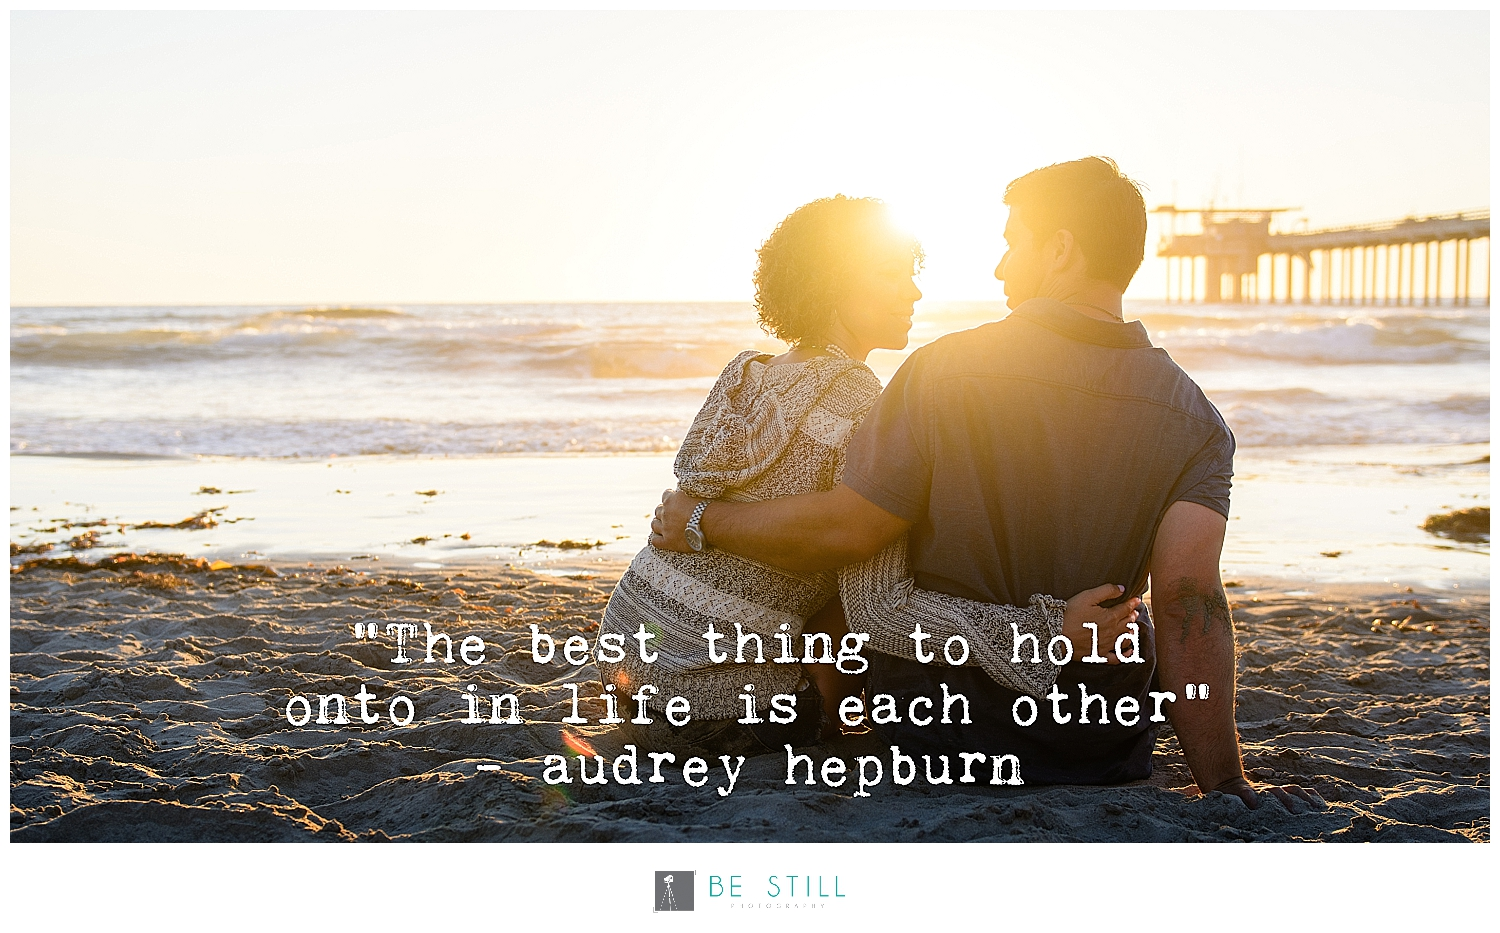 The best thing to hold onto in life is each other audrey hepburn love quotes engagement photography